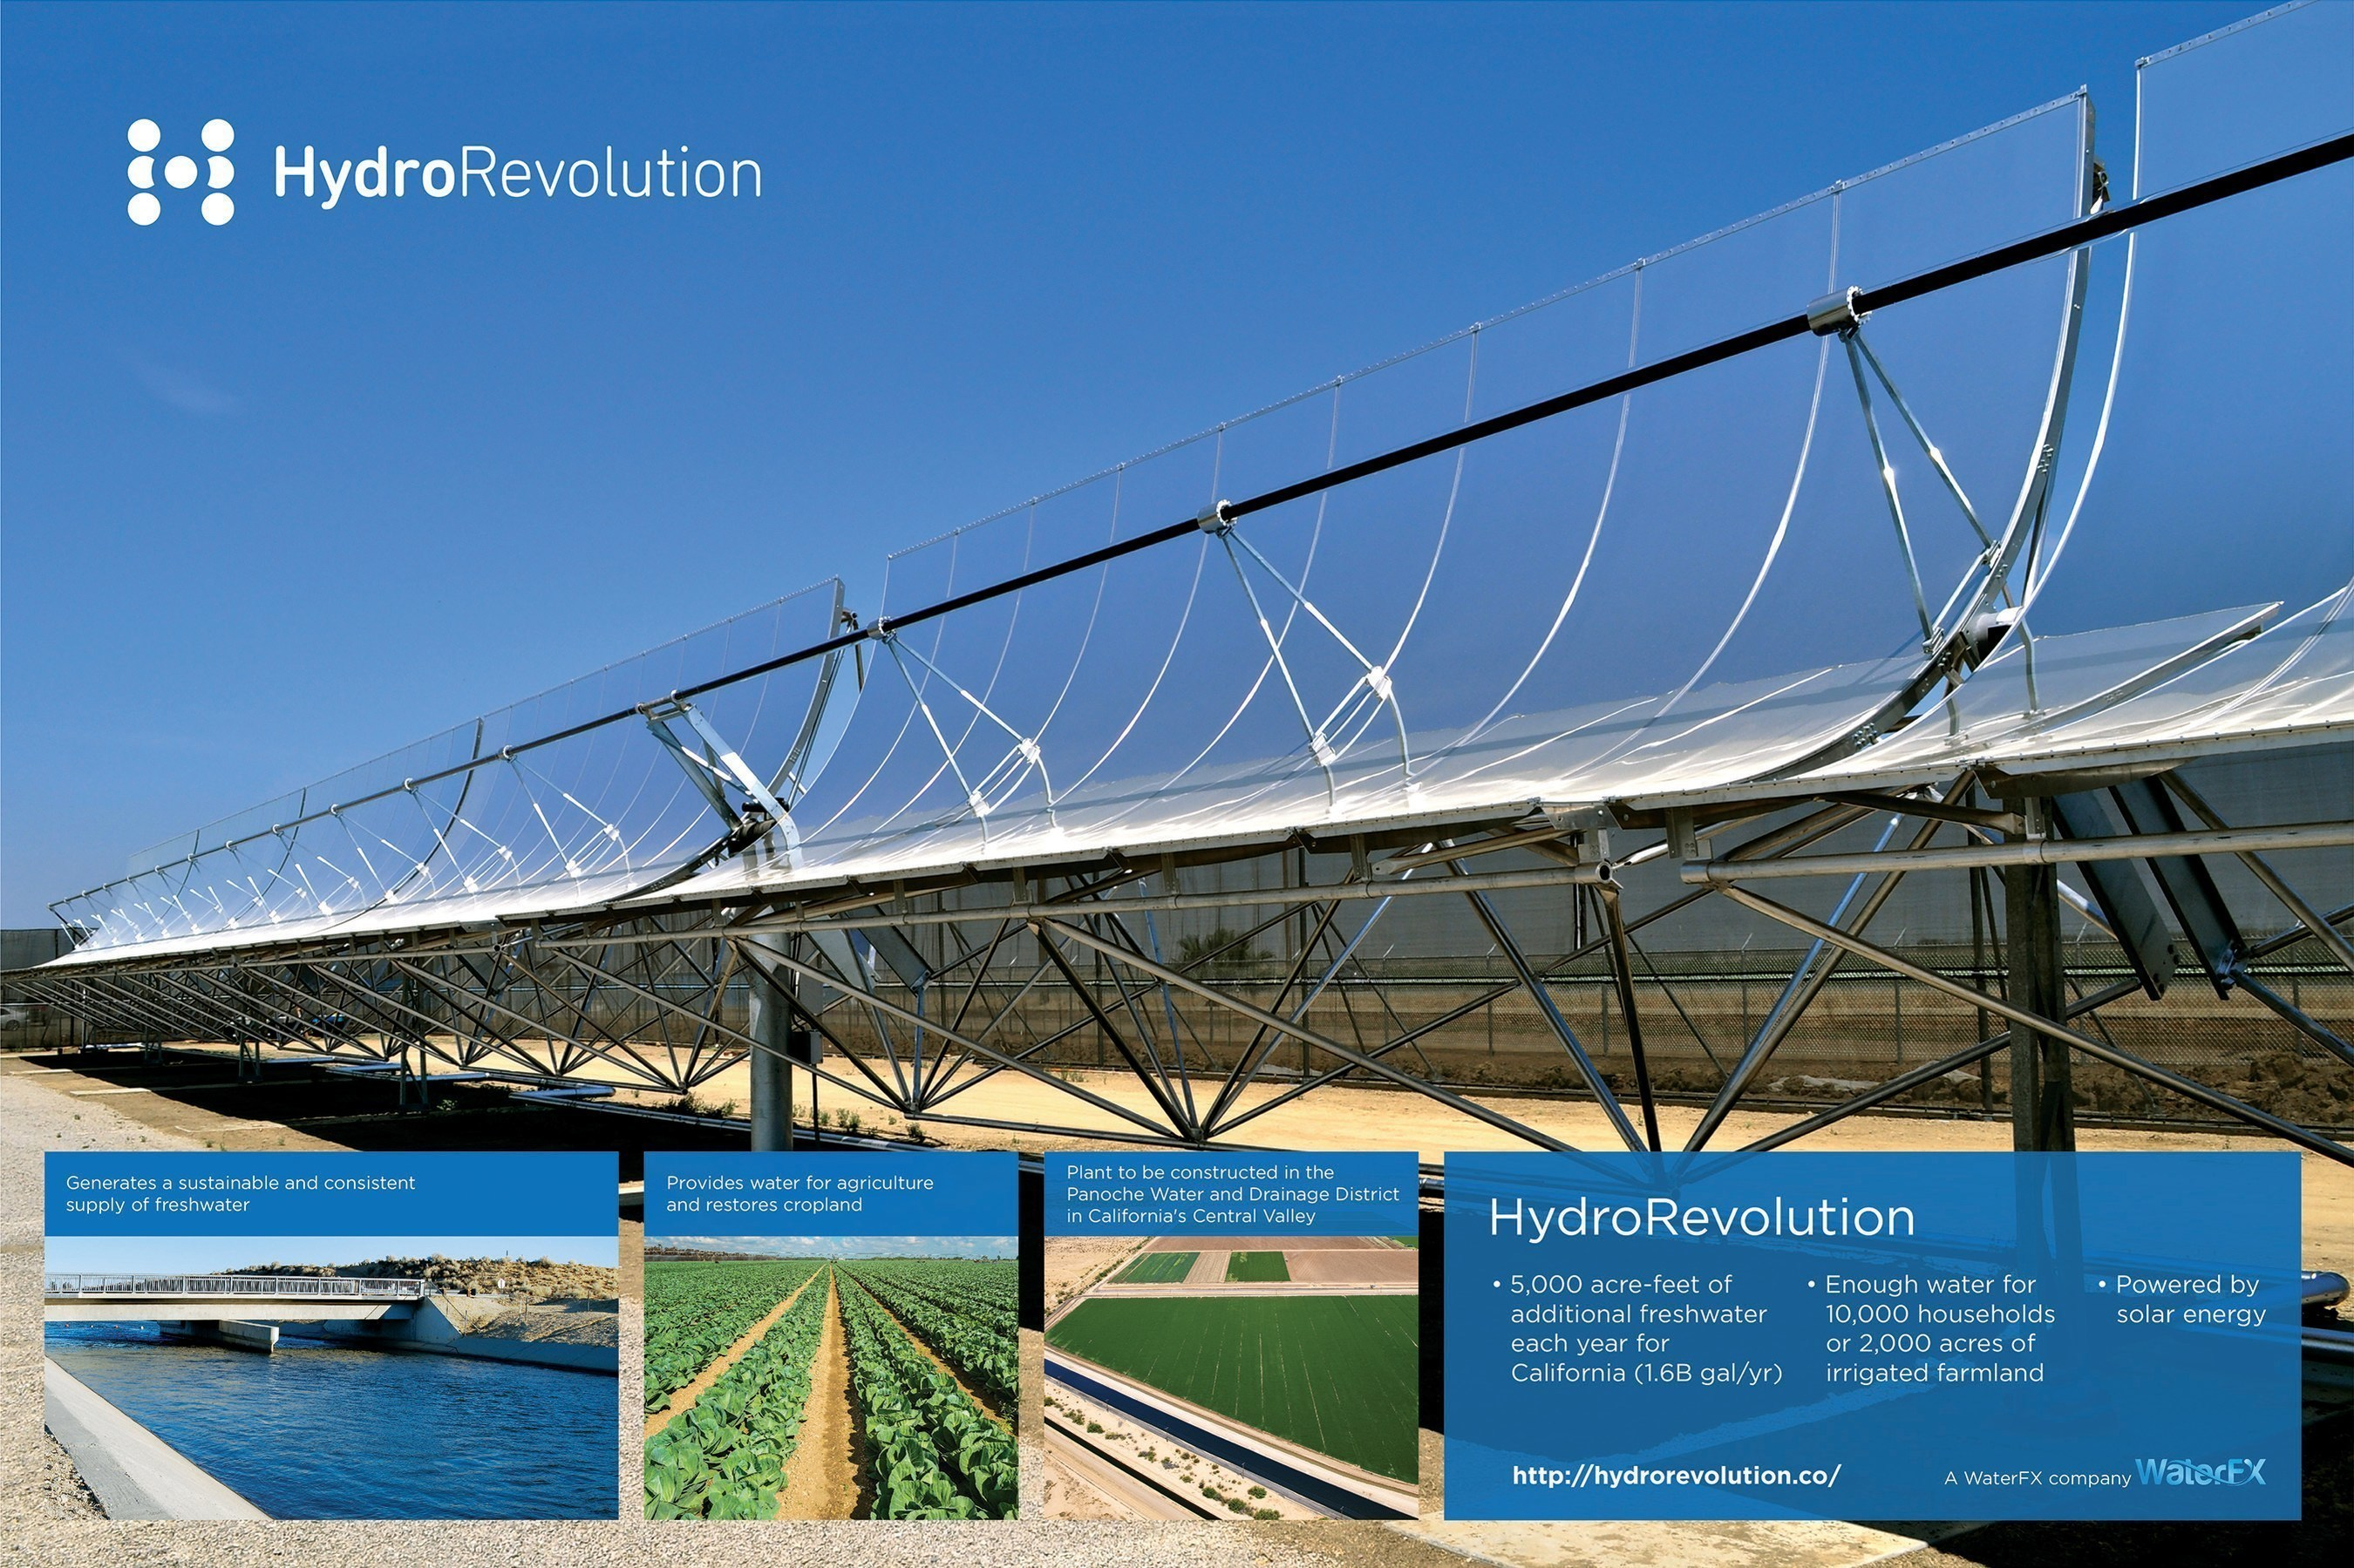 The new commercial solar desalination plant will be constructed in the Panoche Water and Drainage District in California's Central Valley.